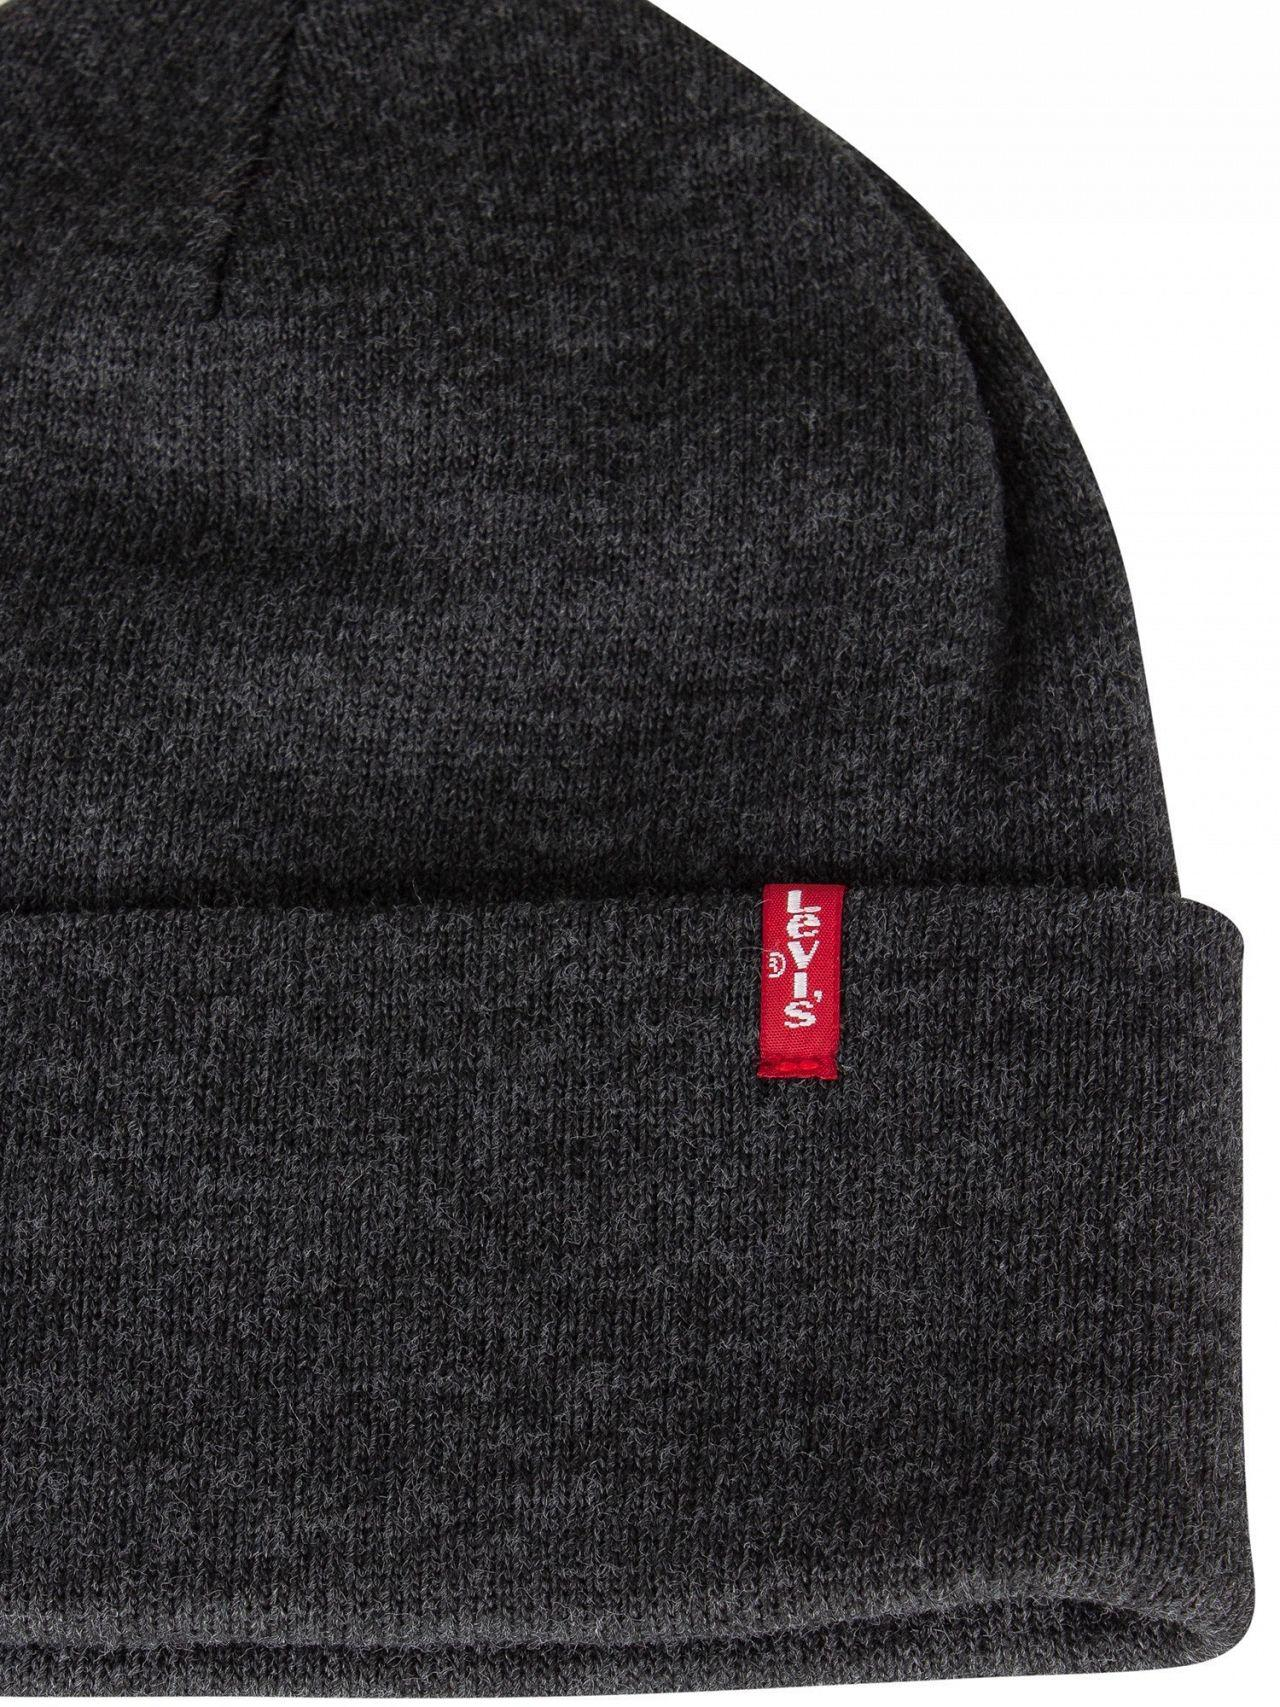 615b94dc664 Lyst - Levi s Dark Grey Slouchy Red Tab Beanie in Gray for Men